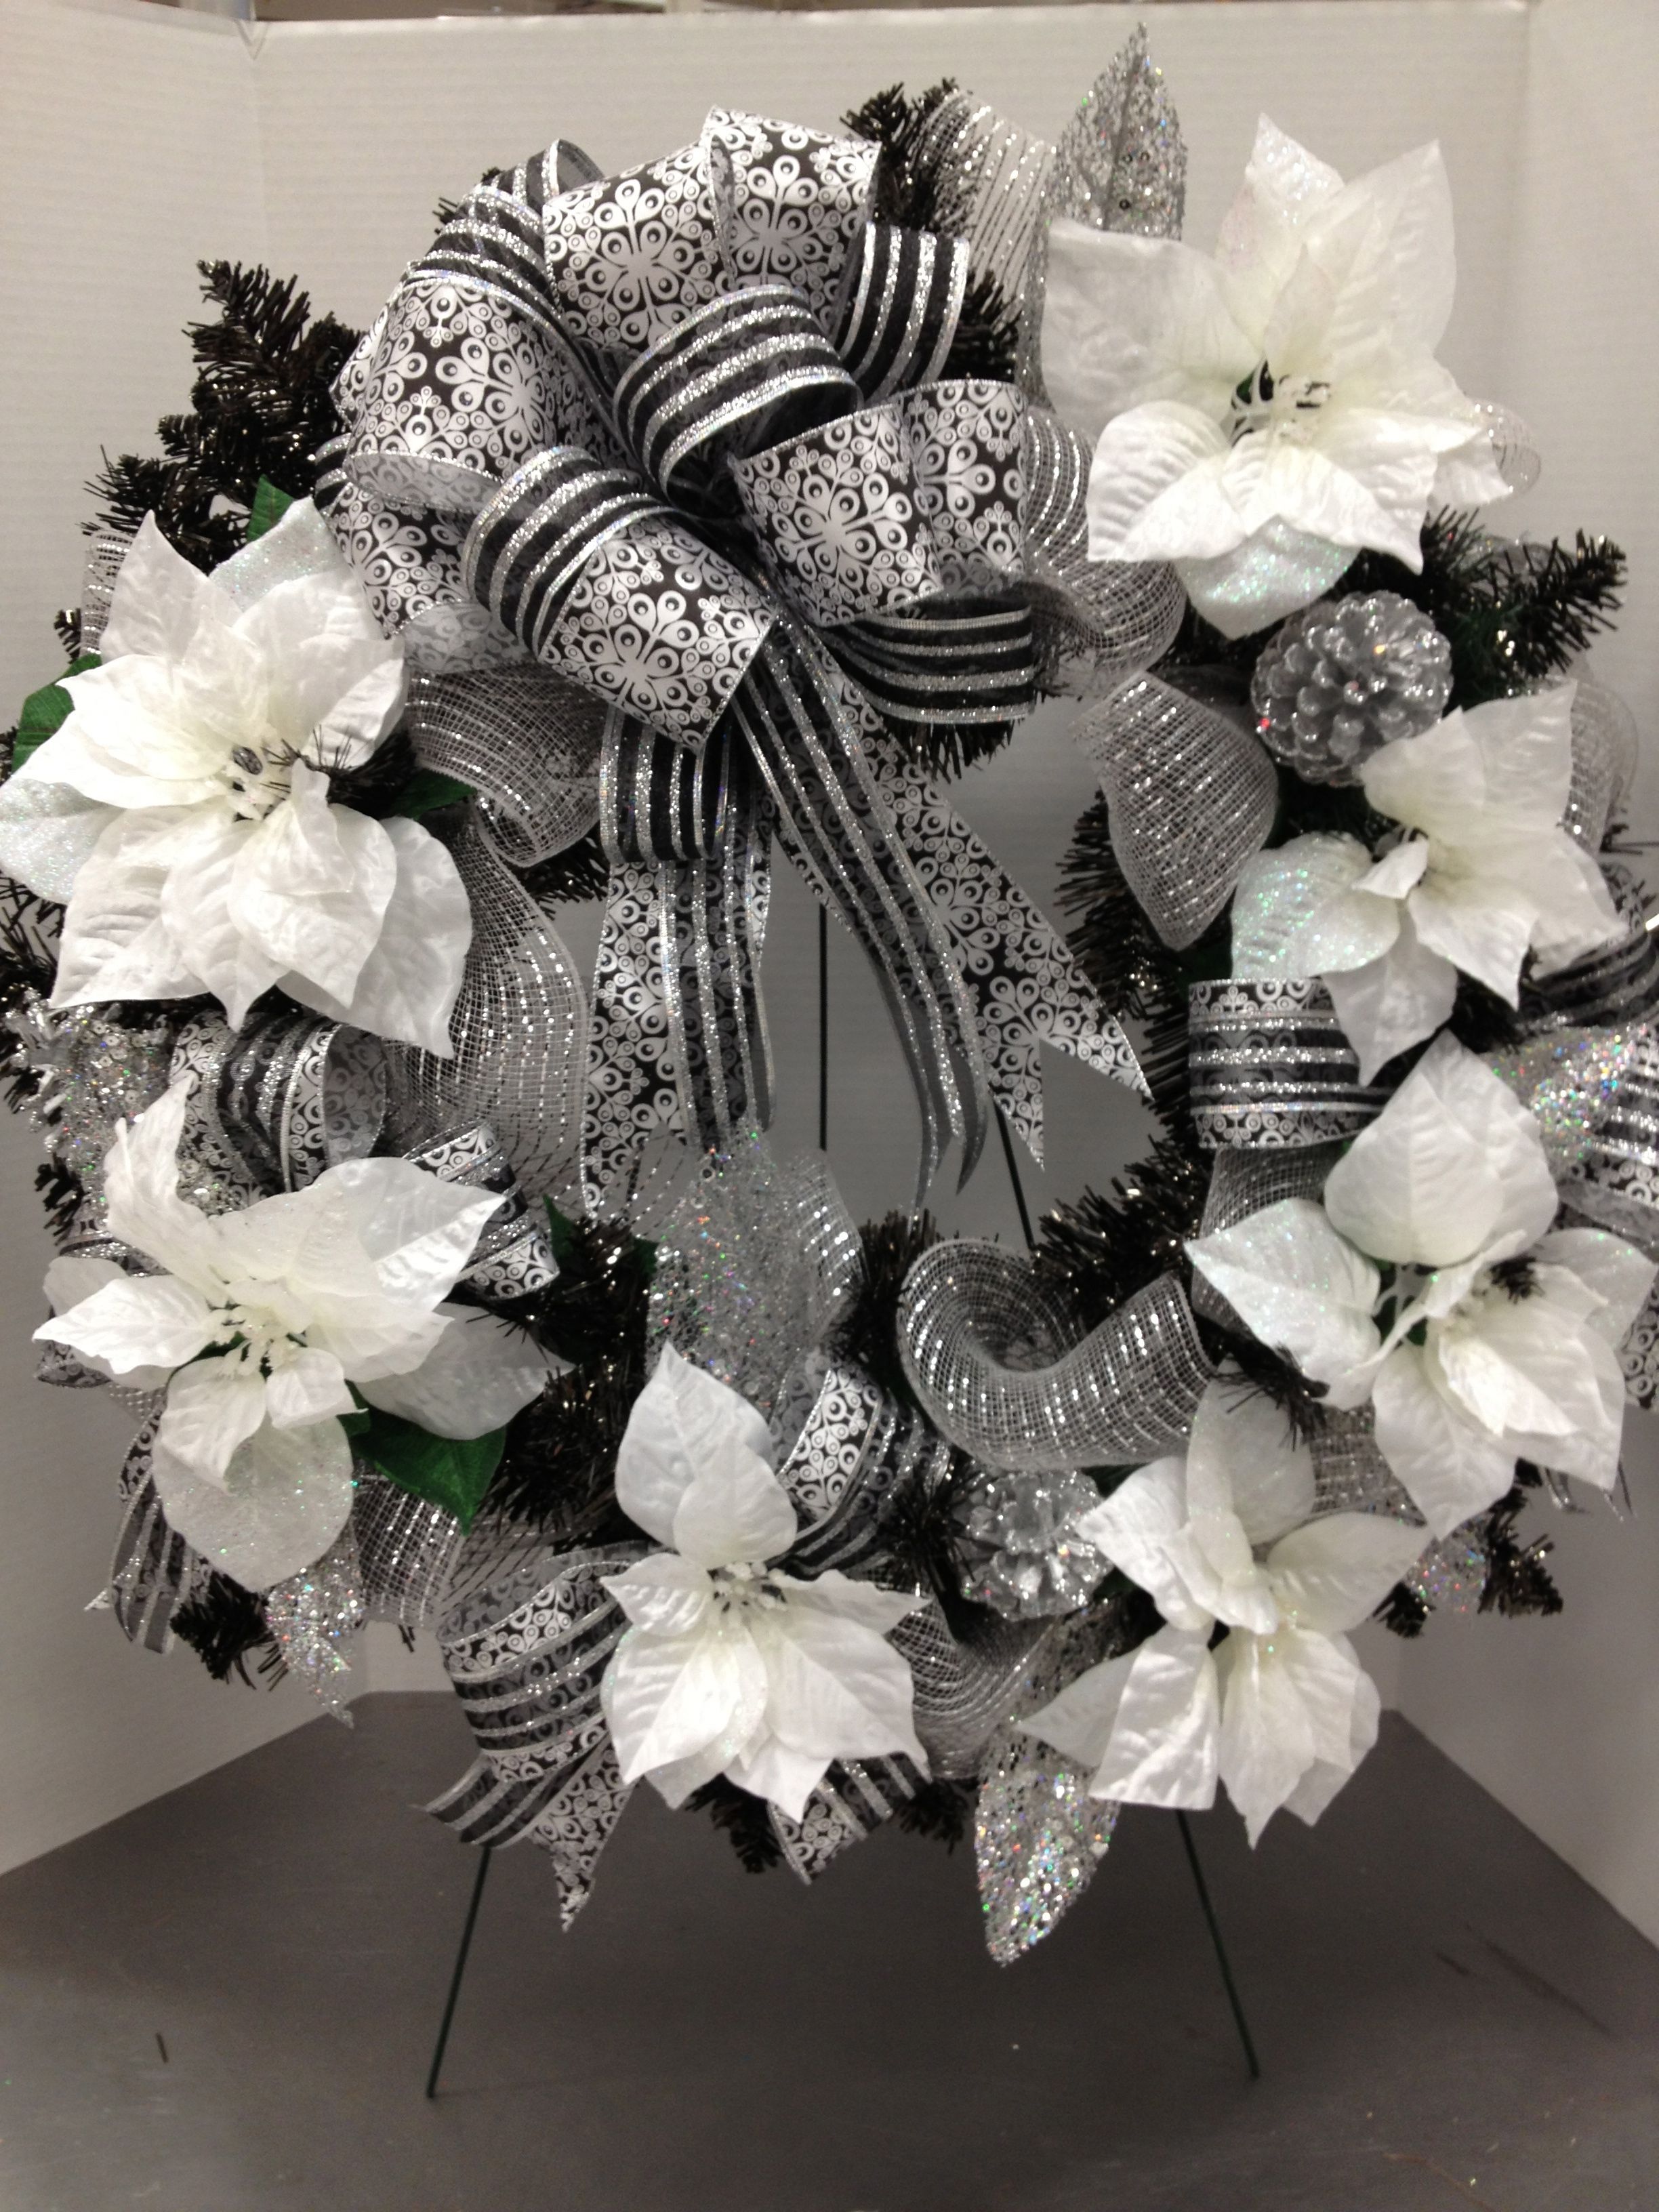 Black And White Christmas Party Ideas Part - 32: Black Tinsel Wreath Black U0026 White Christmas By Christian Rebollo For Store  1552